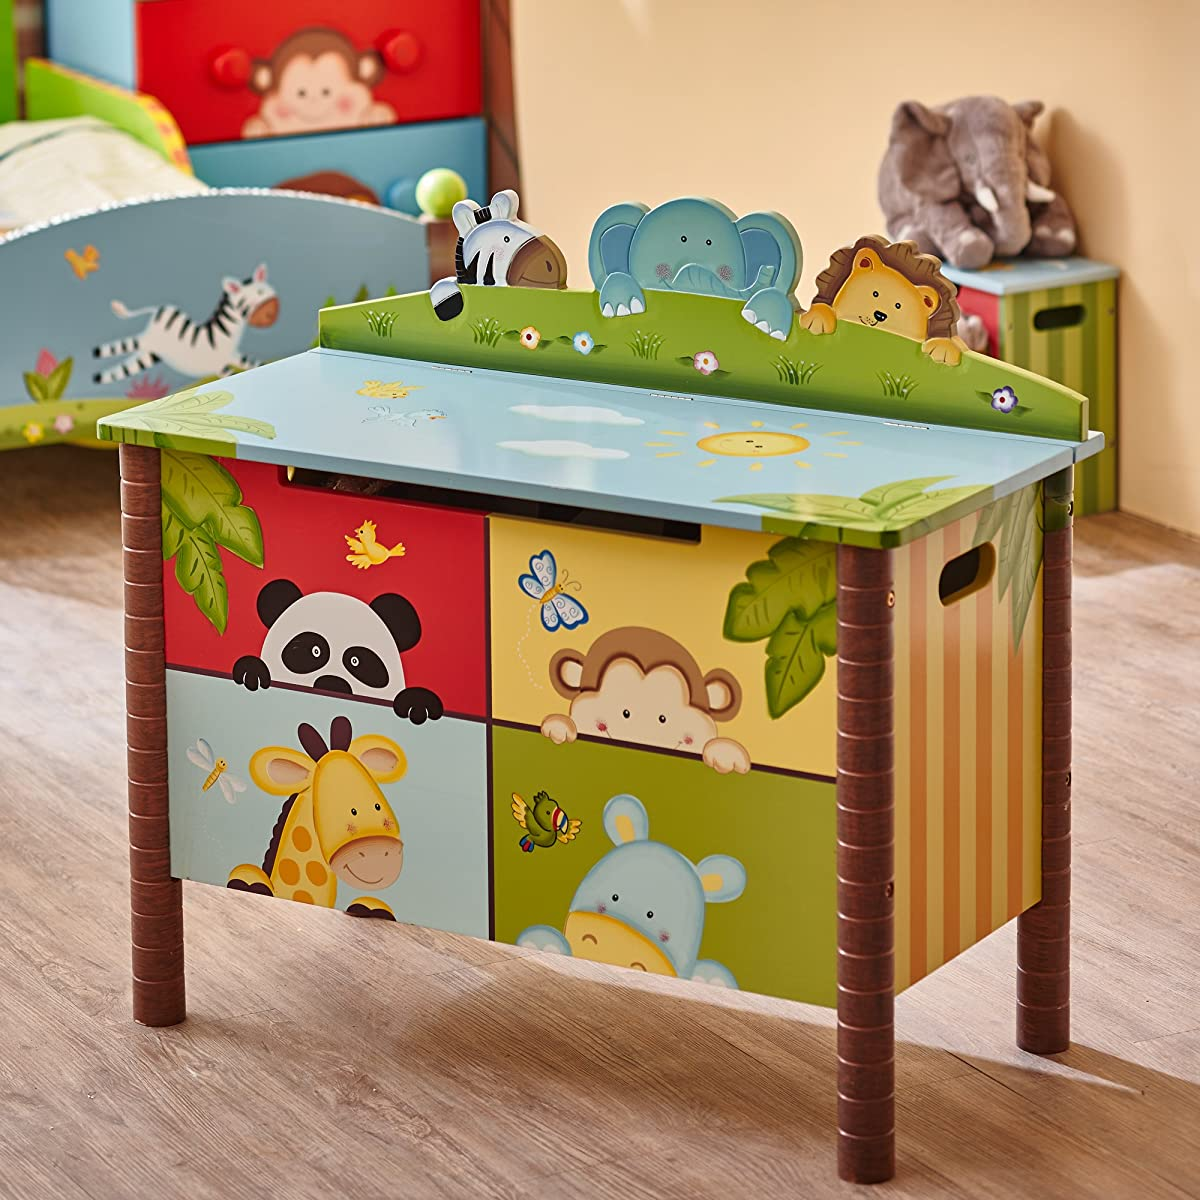 Kids Wooden Toy Chest with Safety Hinges | Imagination Inspiring Hand Crafted